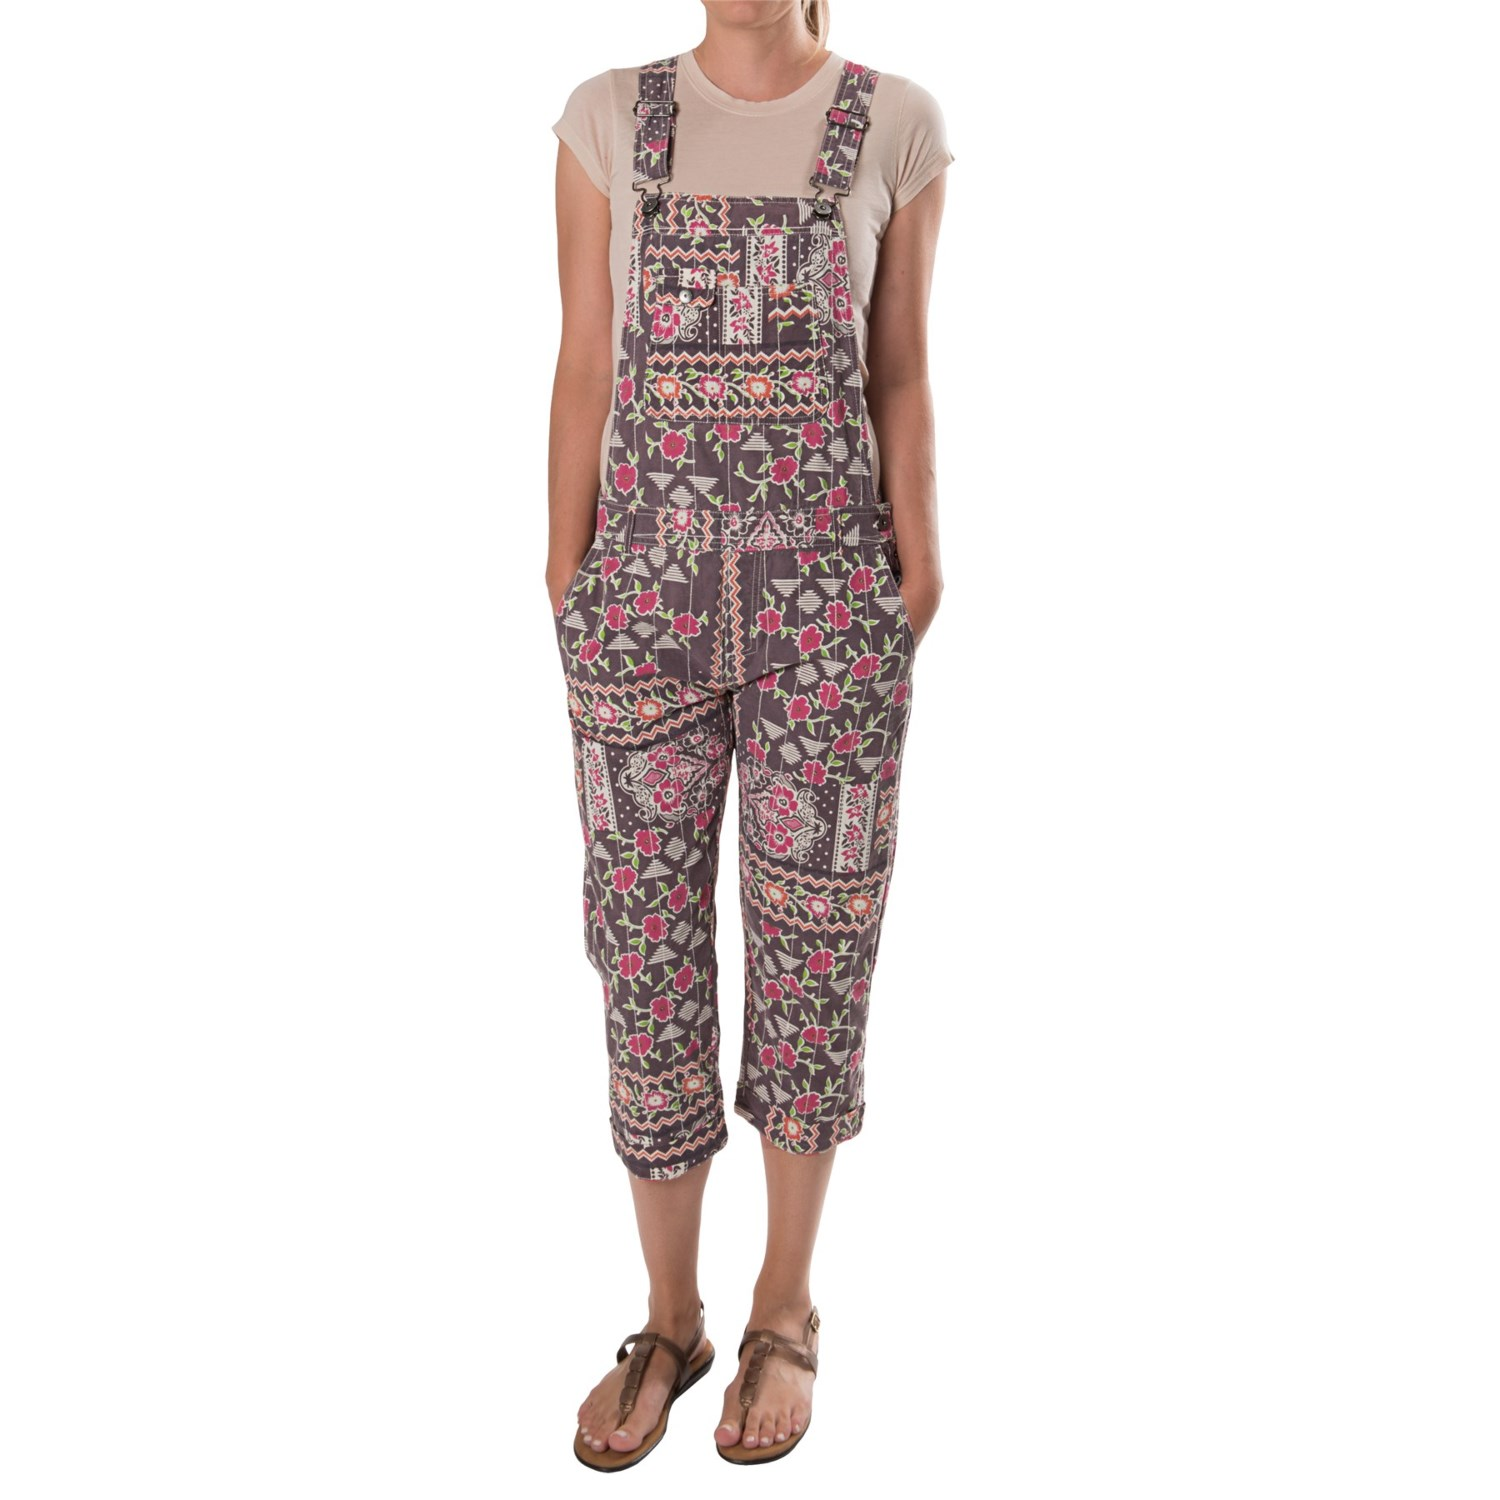 Free shipping BOTH ways on Pants, Women, Capri Pants, from our vast selection of styles. Fast delivery, and 24/7/ real-person service with a smile. Click or call